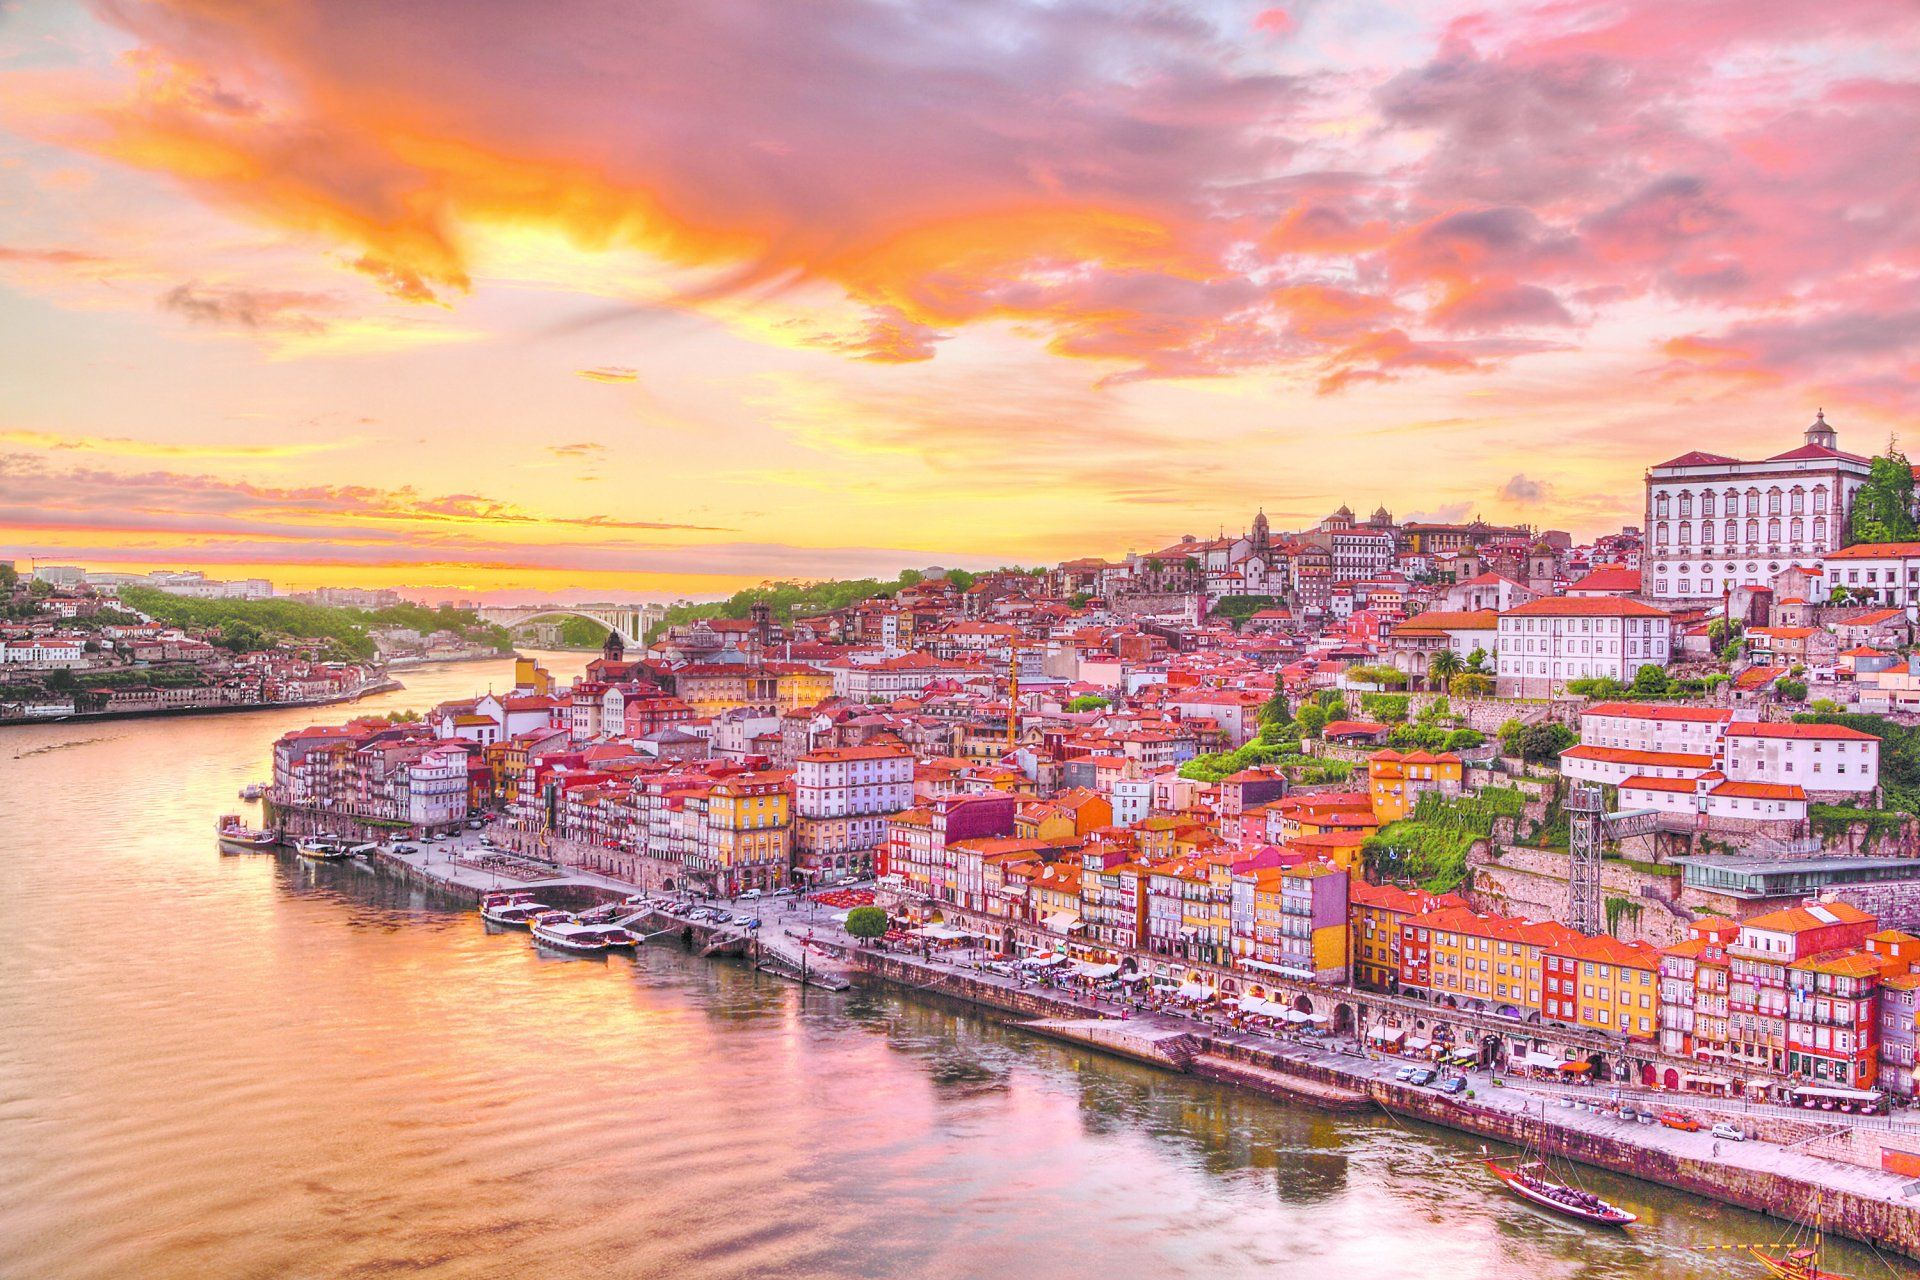 Man Made Porto City Portugal House Colorful Boat Sunset Wallpaper 1920x1280